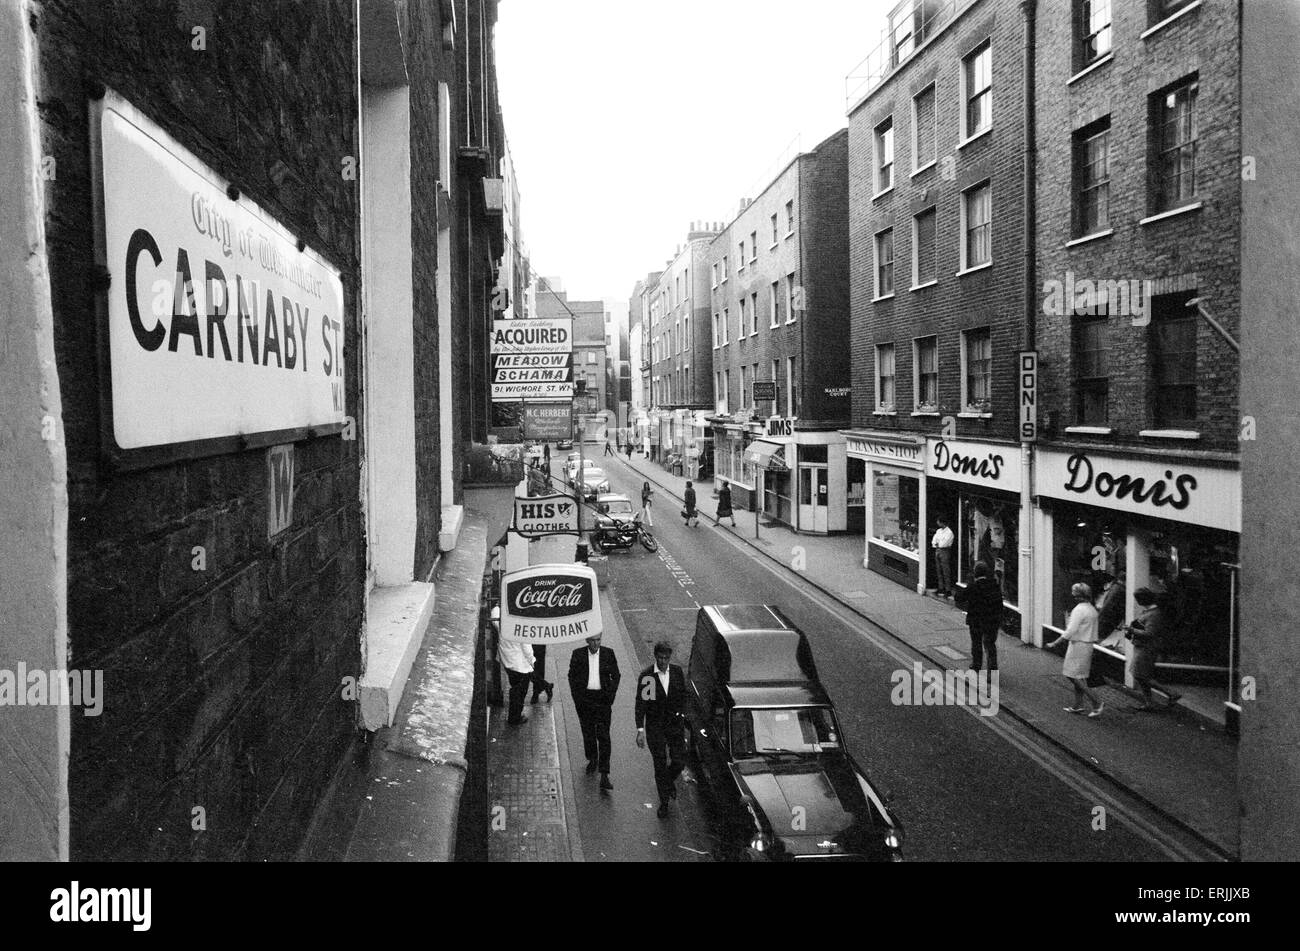 Carnaby Street, London, 22nd August 1965. - Stock Image